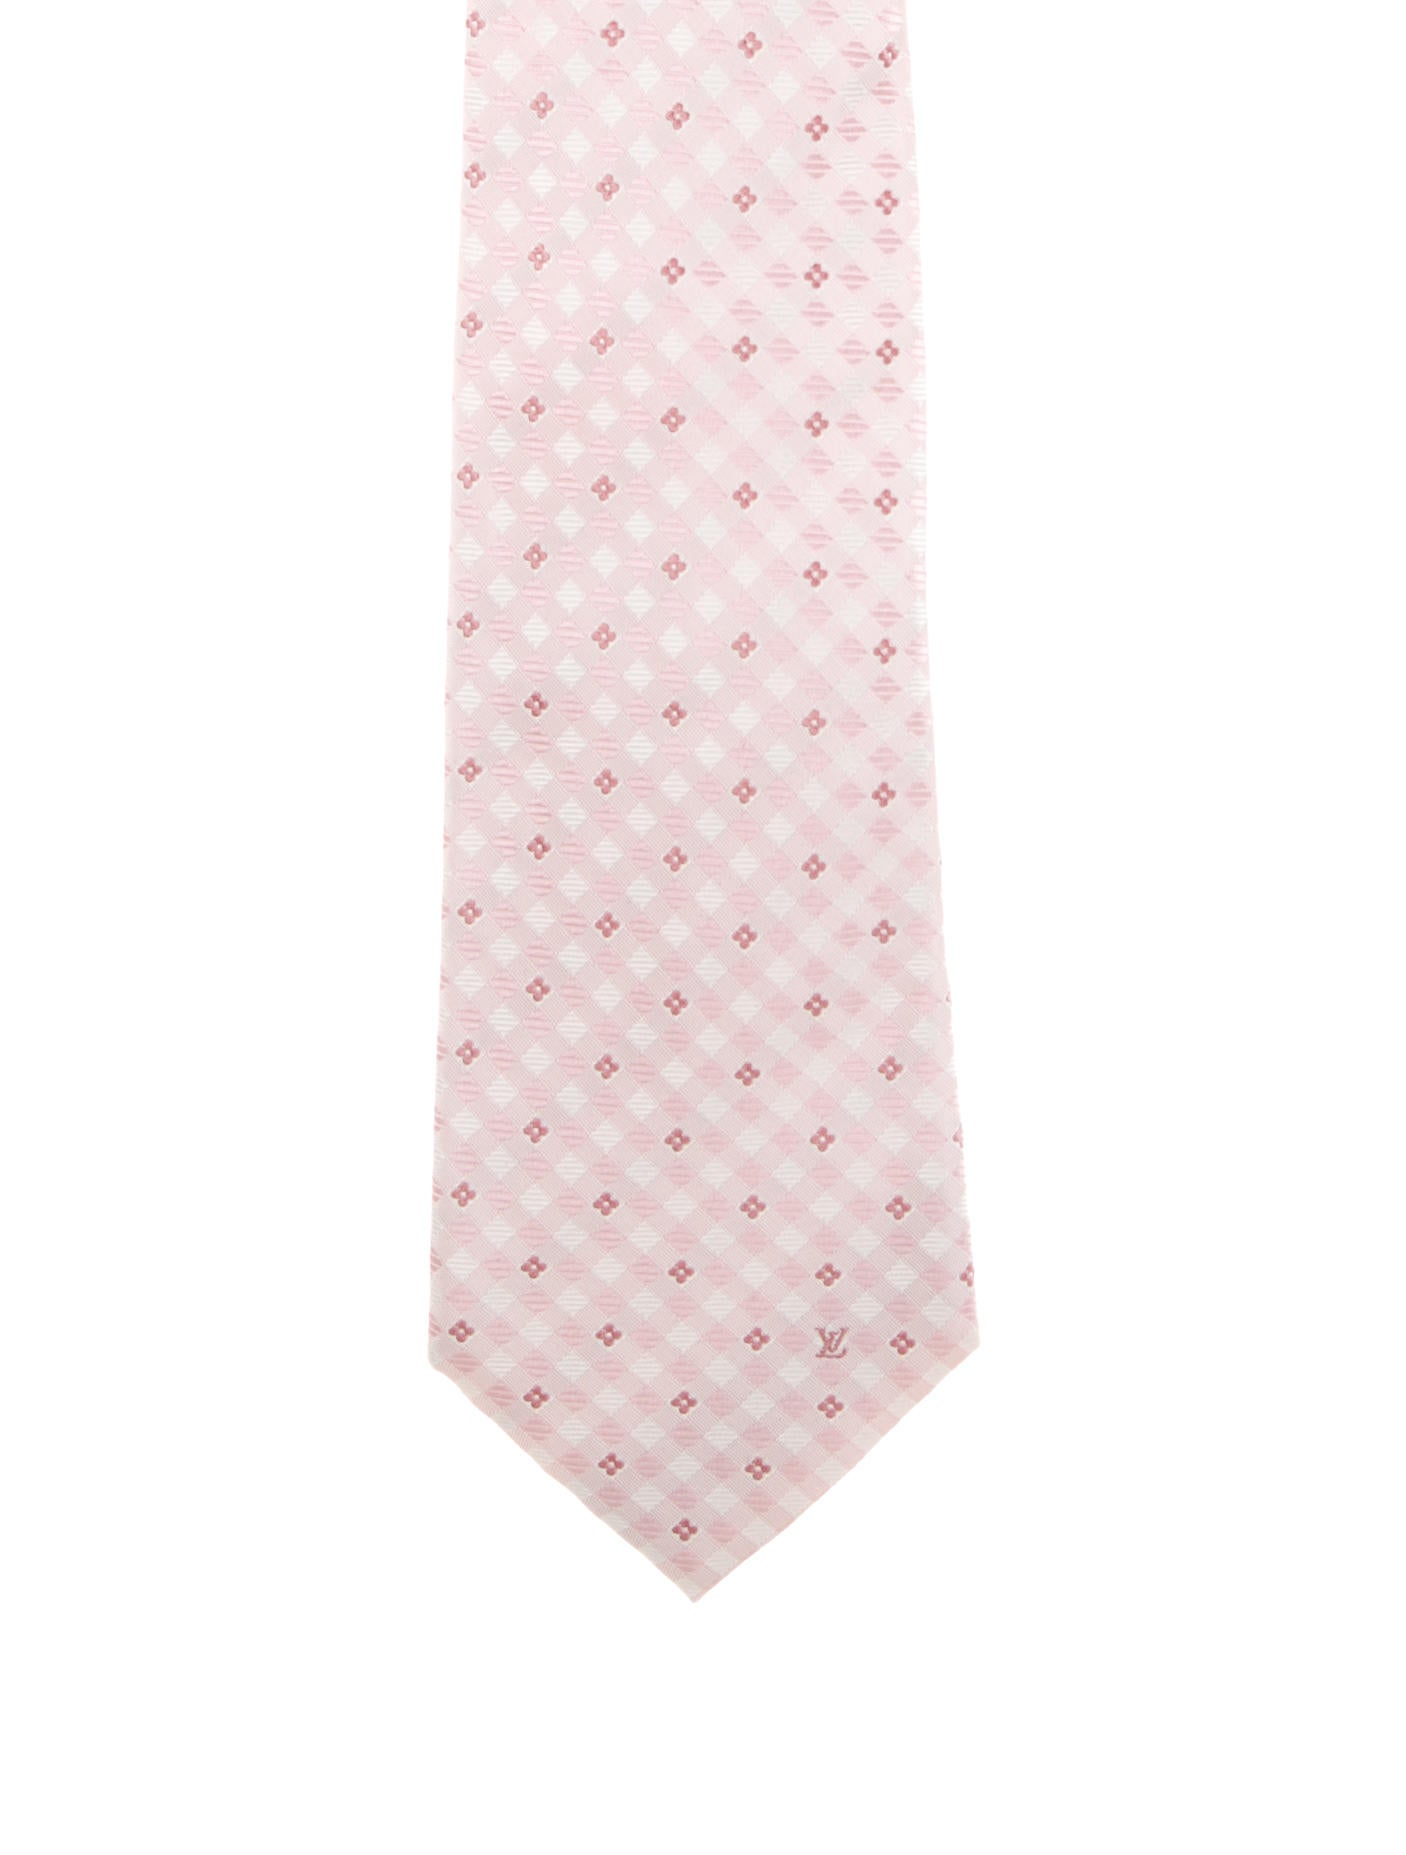 5c2b223142d3 Louis Vuitton Silk Floral Gingham Pint Tie - Suiting Accessories ...